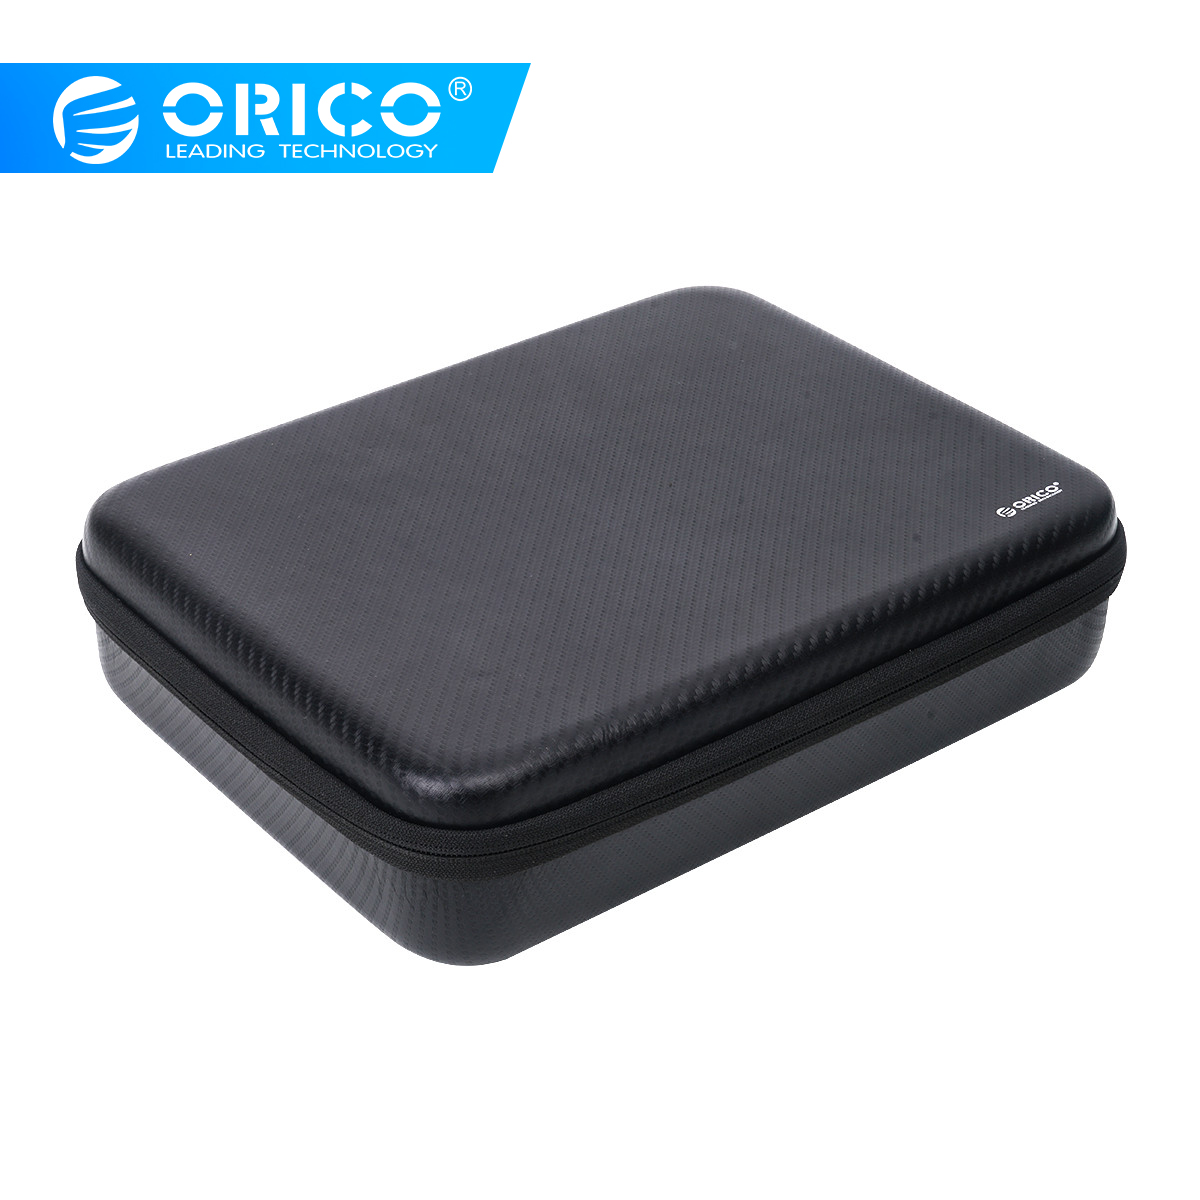 ORICO Multi-function HDD Enclosure Bag 2.5&3.5 Hard Drive Case Power Bank Pouch For Ipad Pro Macbook Air Bag